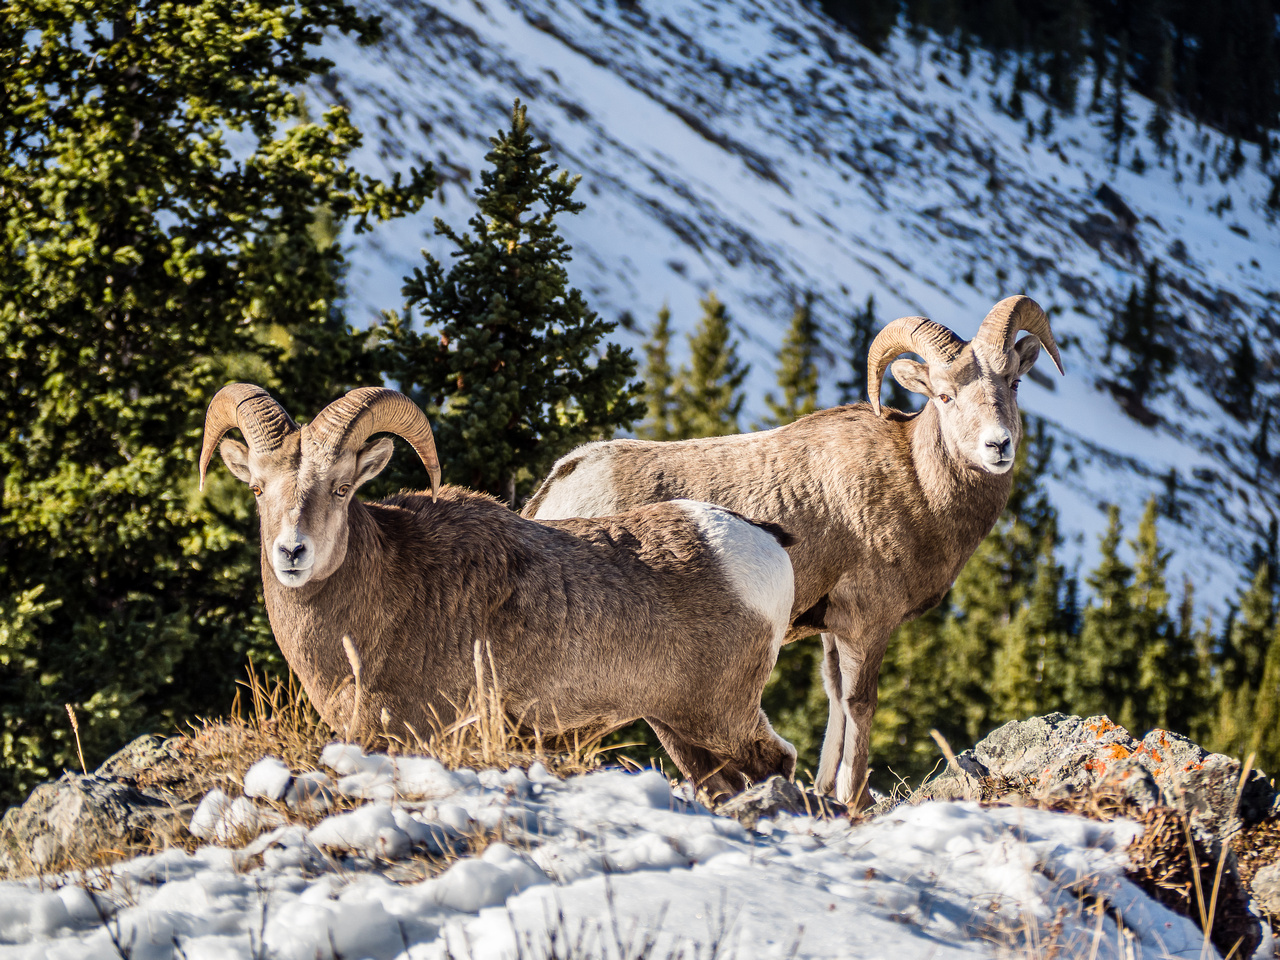 Bighorn Sheep - these rams are too small to be hunted.